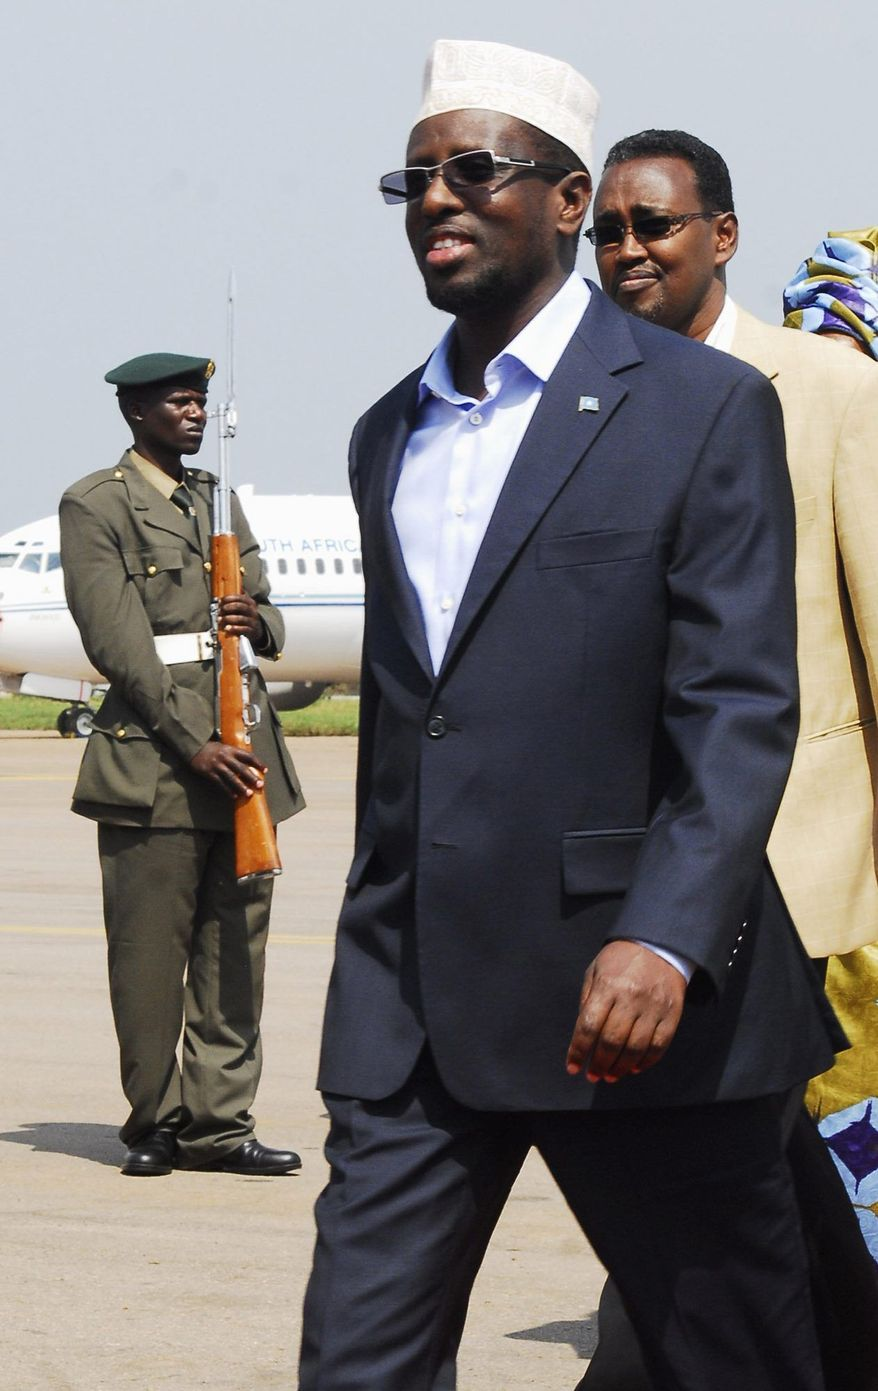 Somali President Sheik Sharif Sheik Ahmed arrives in Entebbe, Uganda, for the 15th African Union summit. African leaders and U.S. officials called for stepped-up efforts in Somalia at the summit in Kampala, Uganda. (Associated Press)